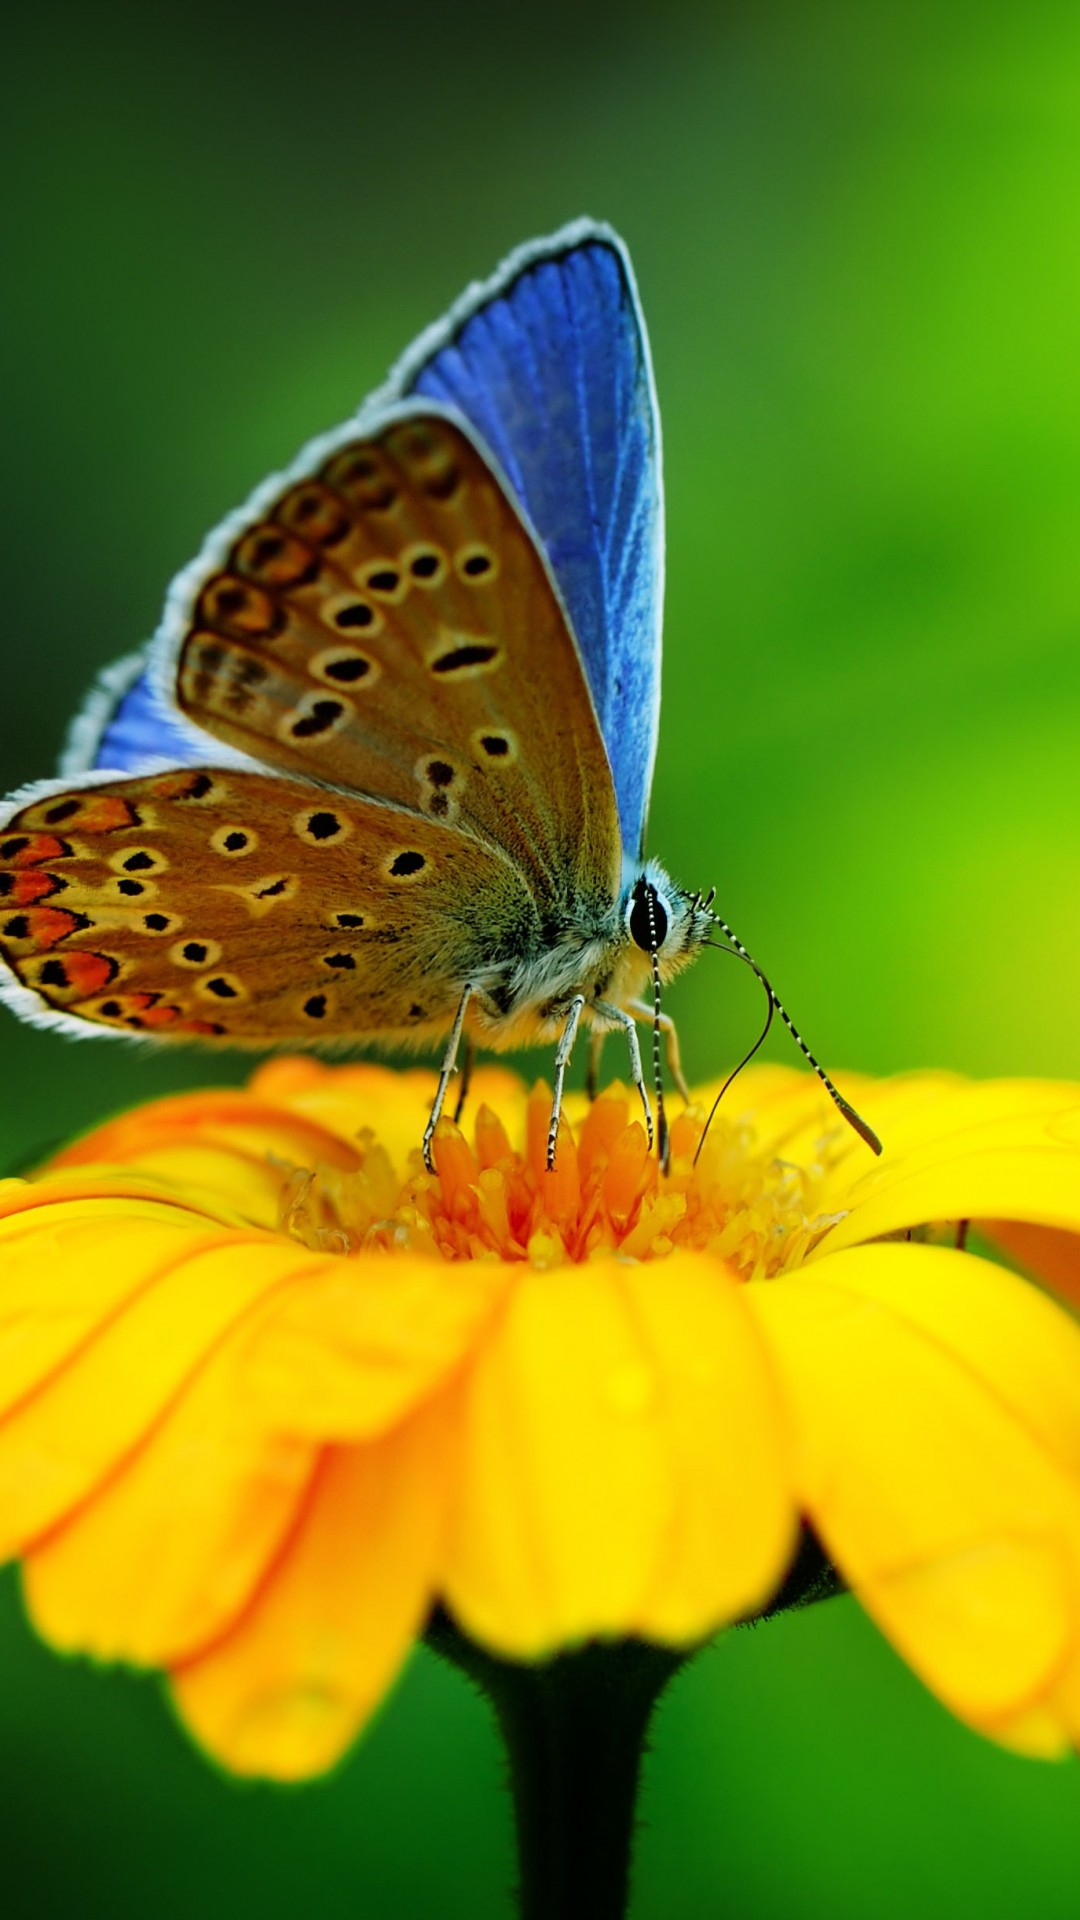 Butterfly Collecting Pollen Wallpaper for Google Nexus 5